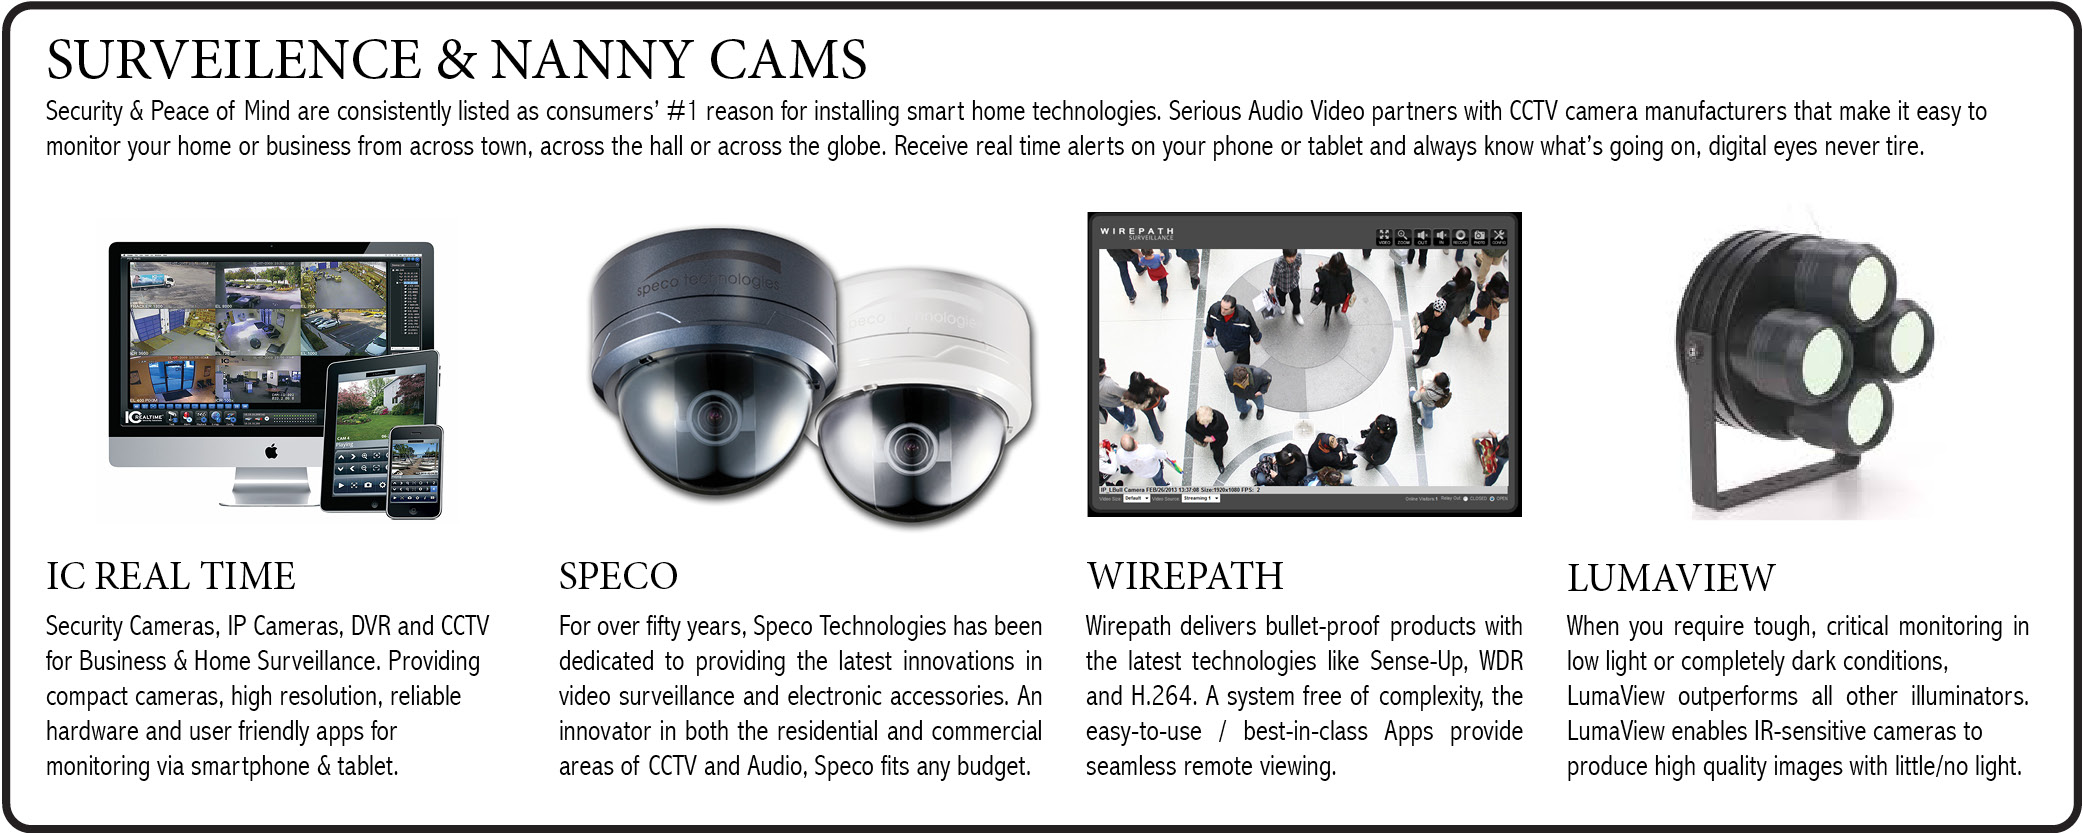 NANNY-CAM-SURVEILENCE-LUMAVIEW-SPECO-WIREPATH-IC-REALTIME-NJ-SERIOUS-AUDIO-VIDEO